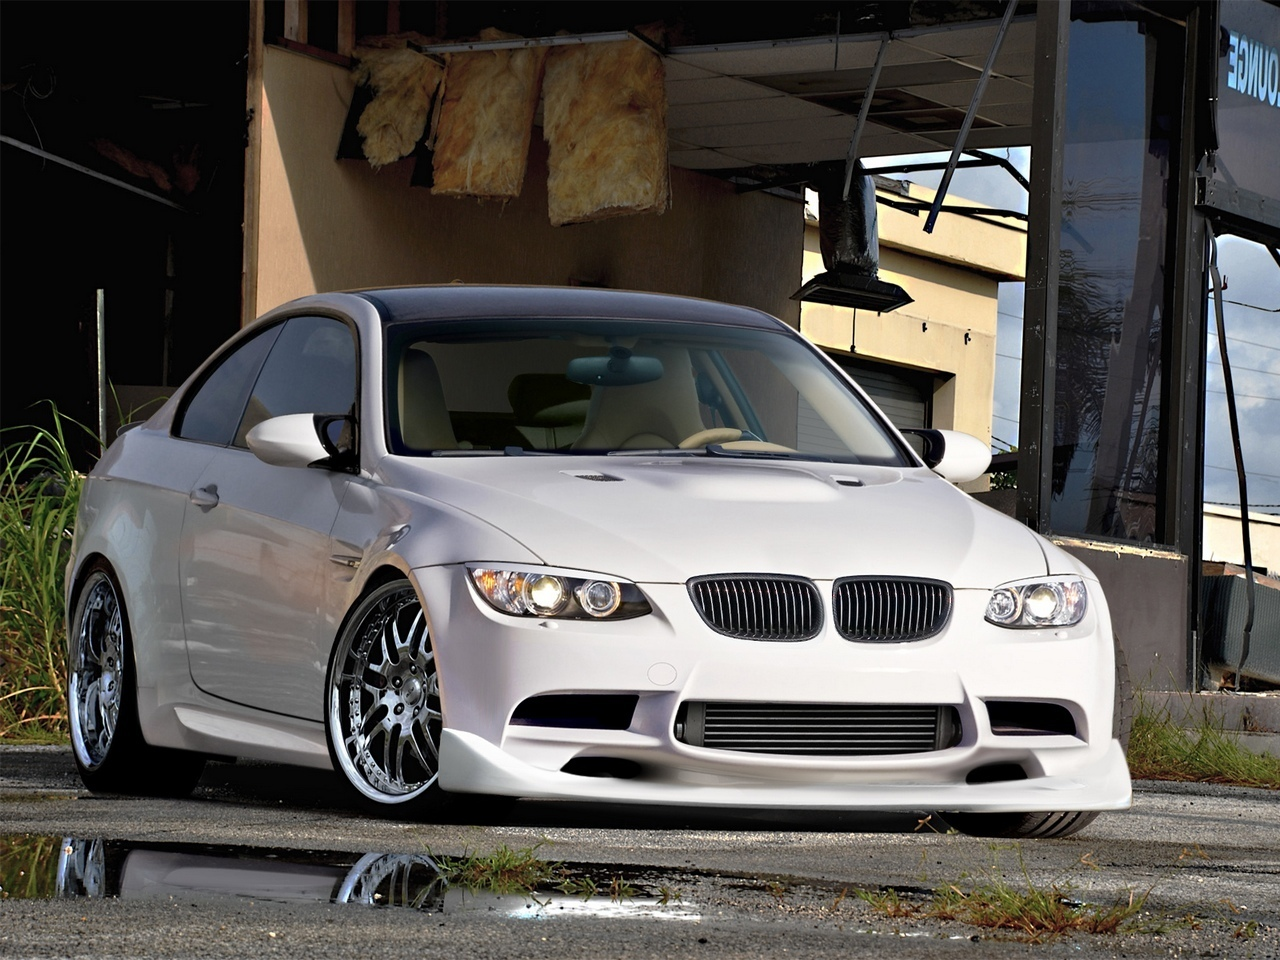 bmw images bmw m3 gt tuning hd wallpaper and background. Black Bedroom Furniture Sets. Home Design Ideas